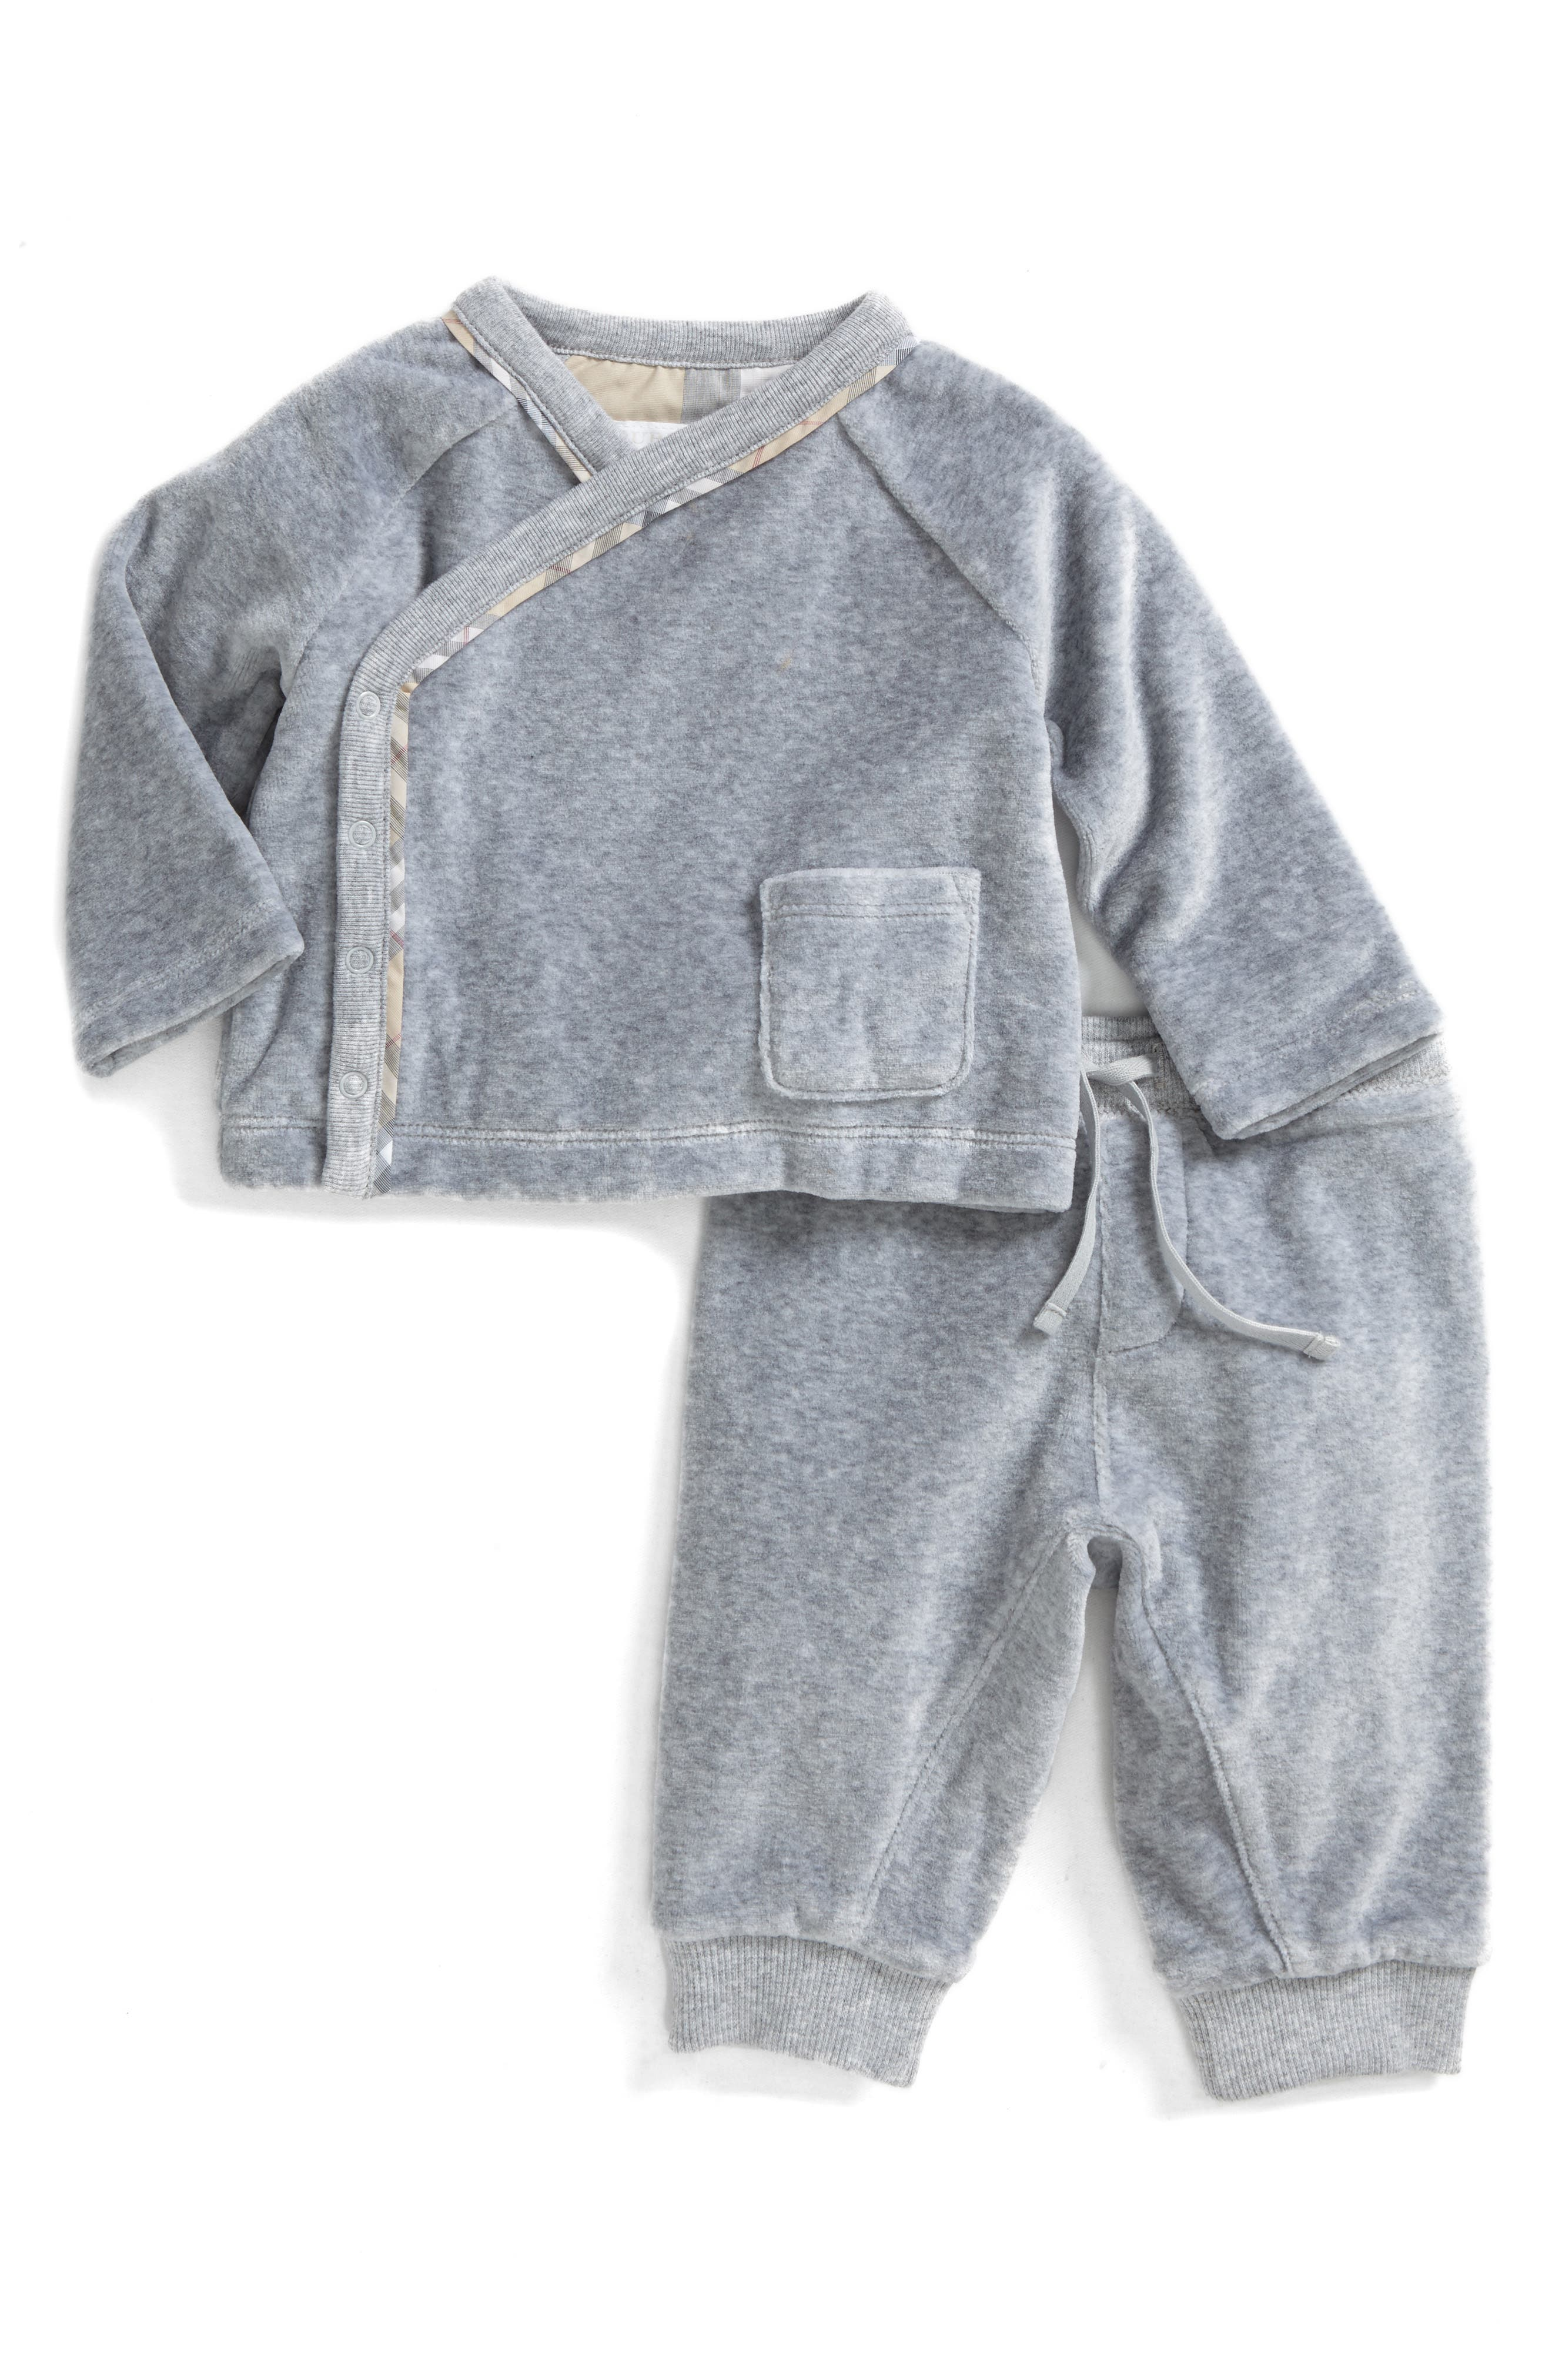 Alternate Image 1 Selected - Burberry Remy Shirt & Pants Set (Baby Boys)